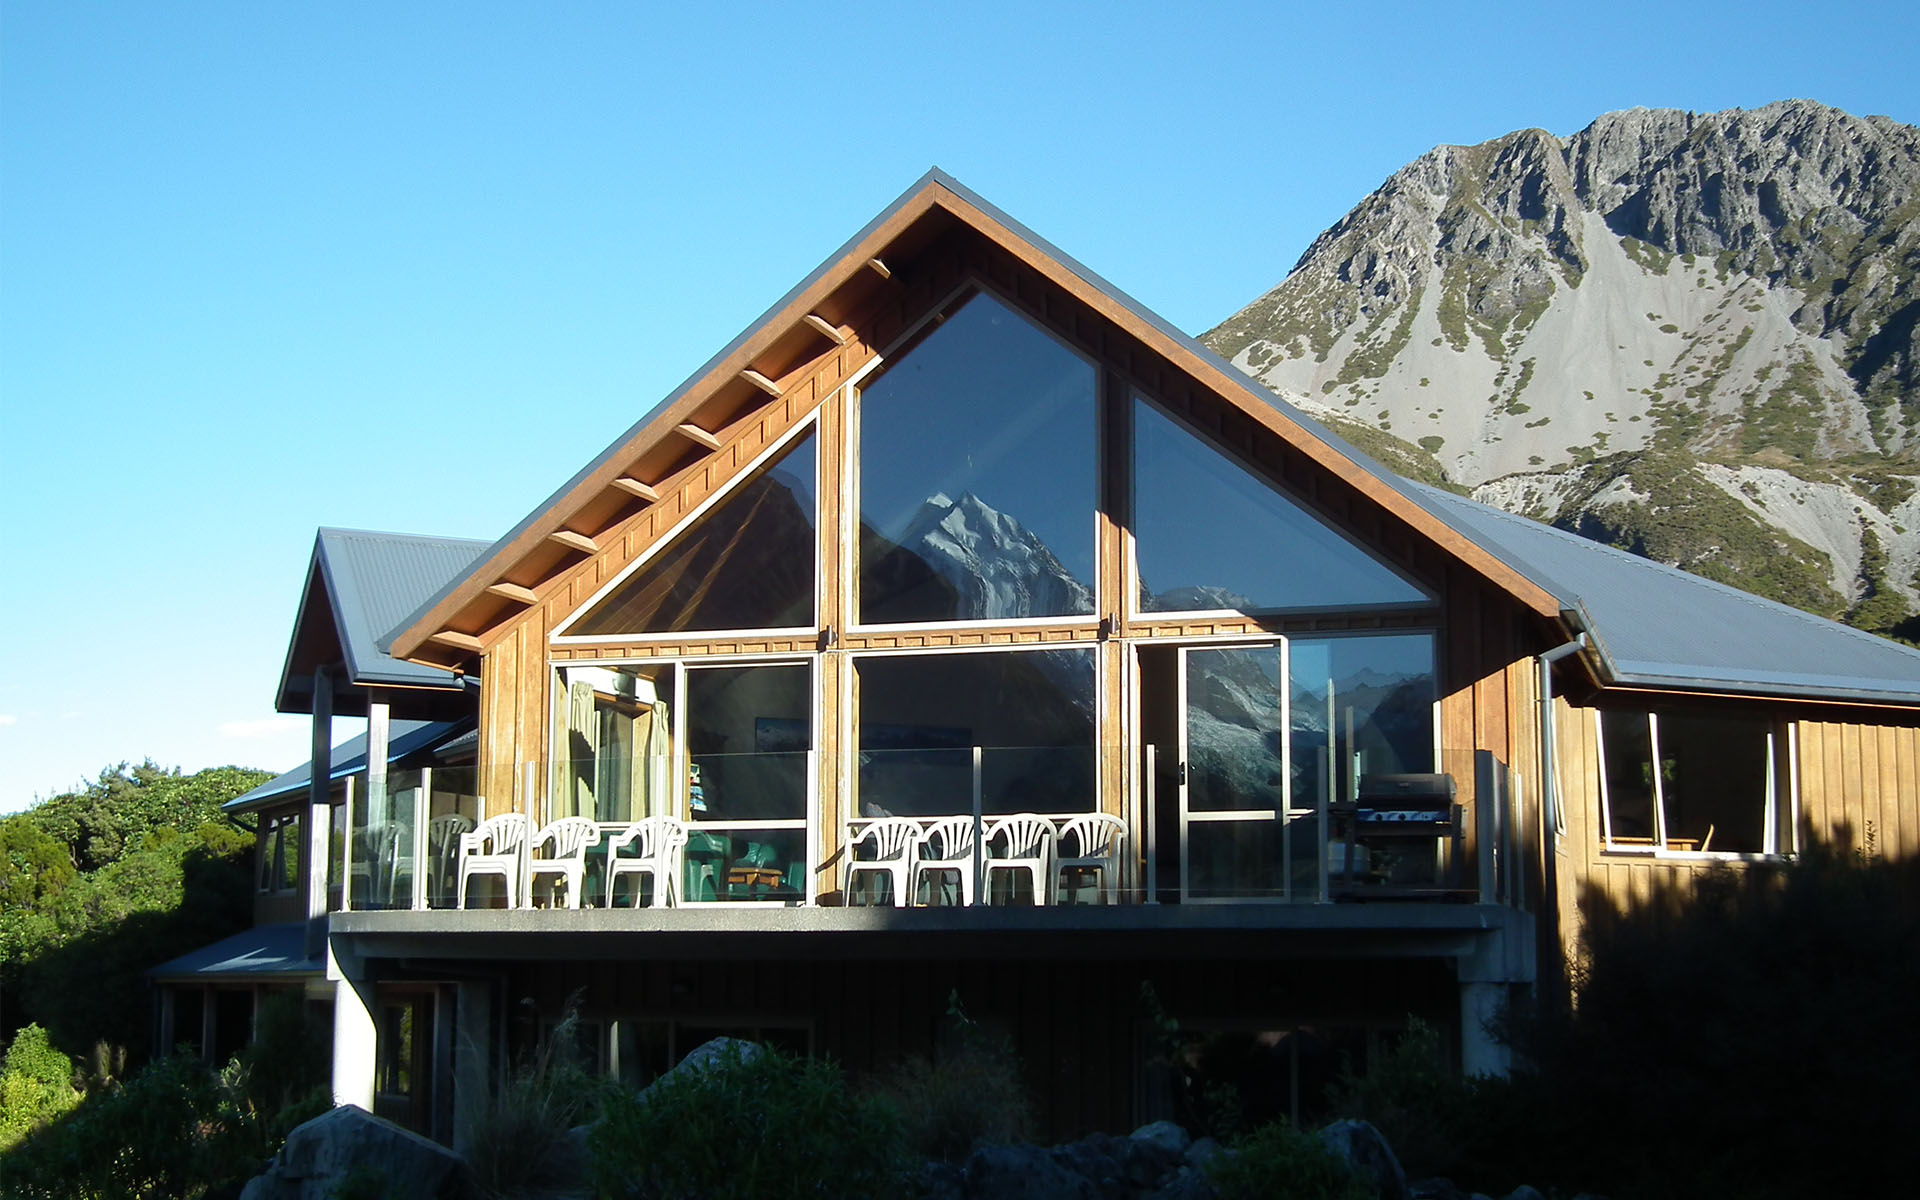 Aoraki mount cook alpine lodge mackenzie region for The alpine lodge